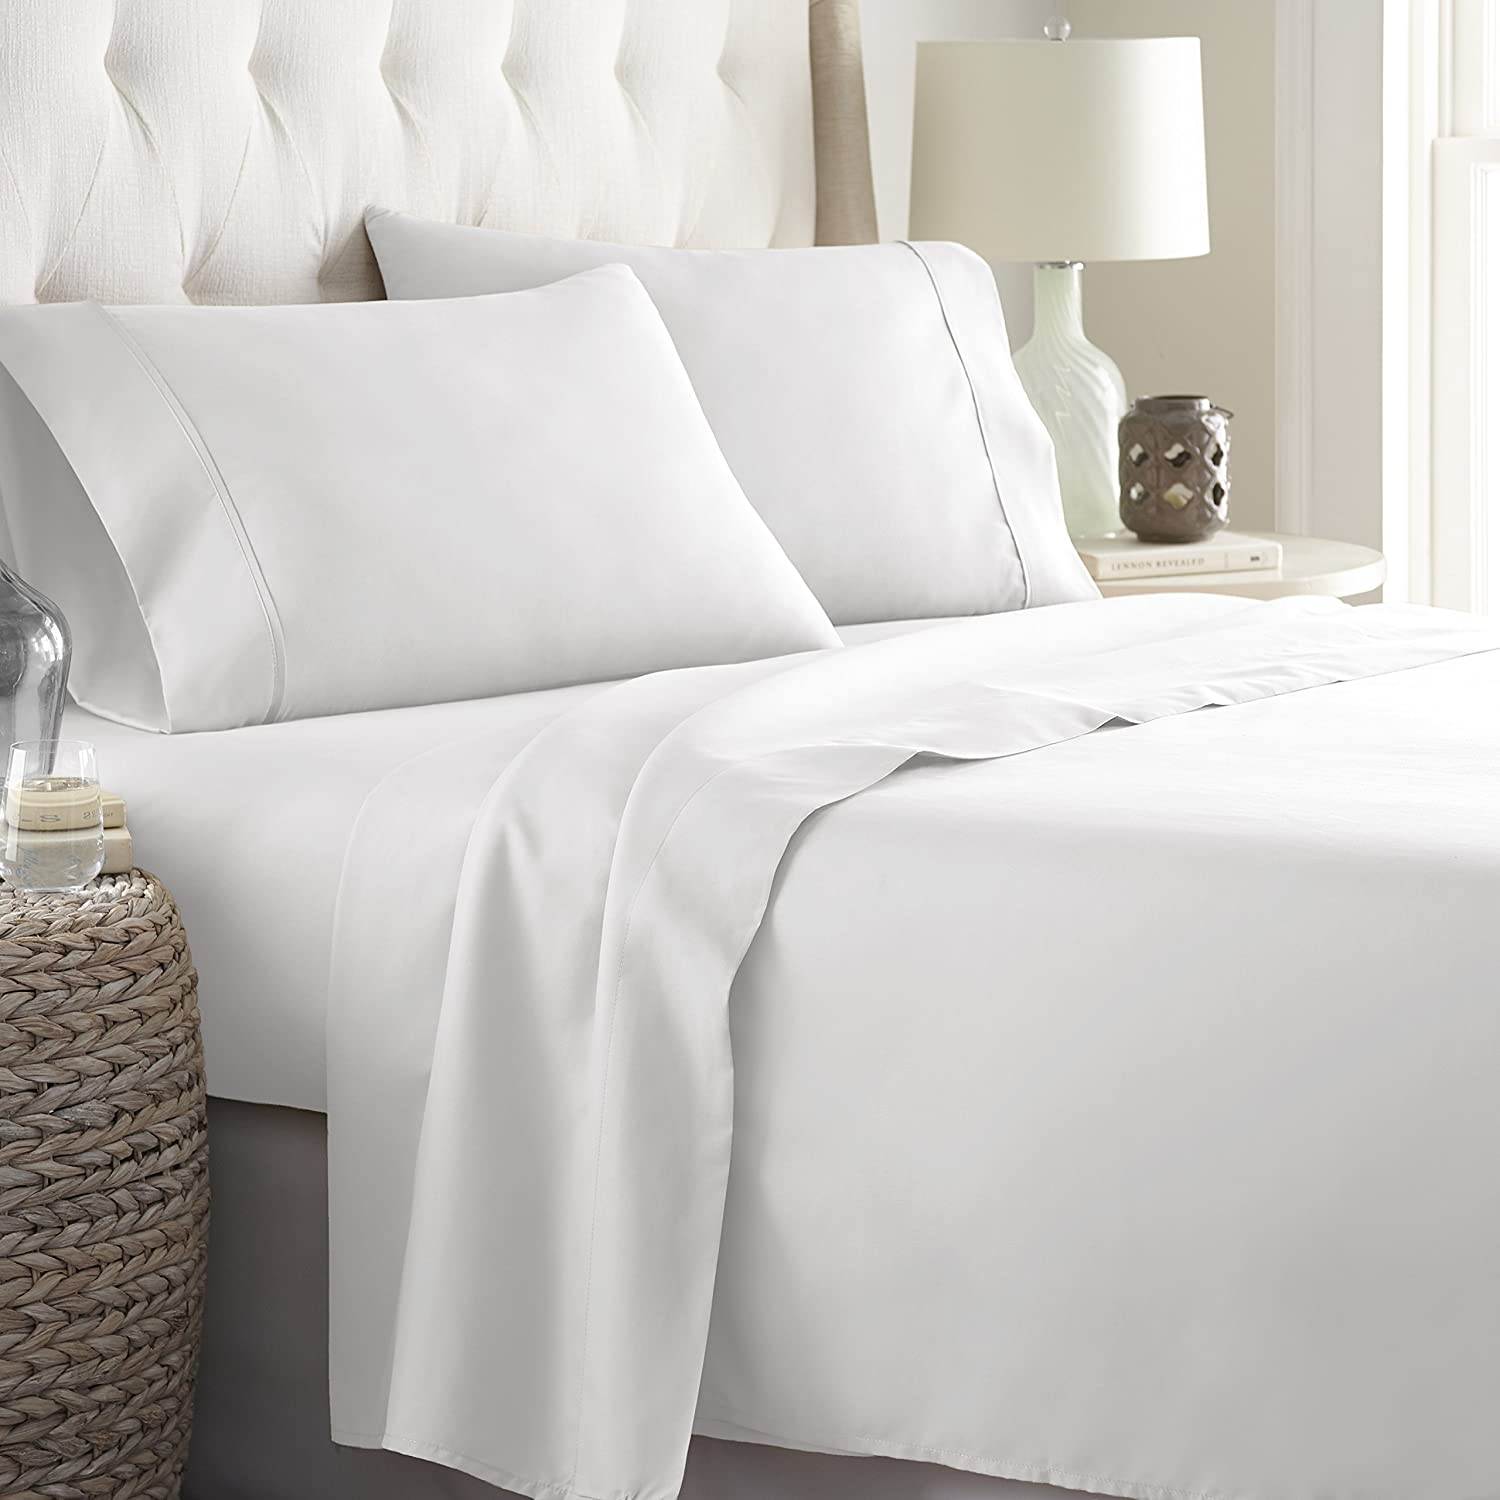 How to learn to choose high-quality linens